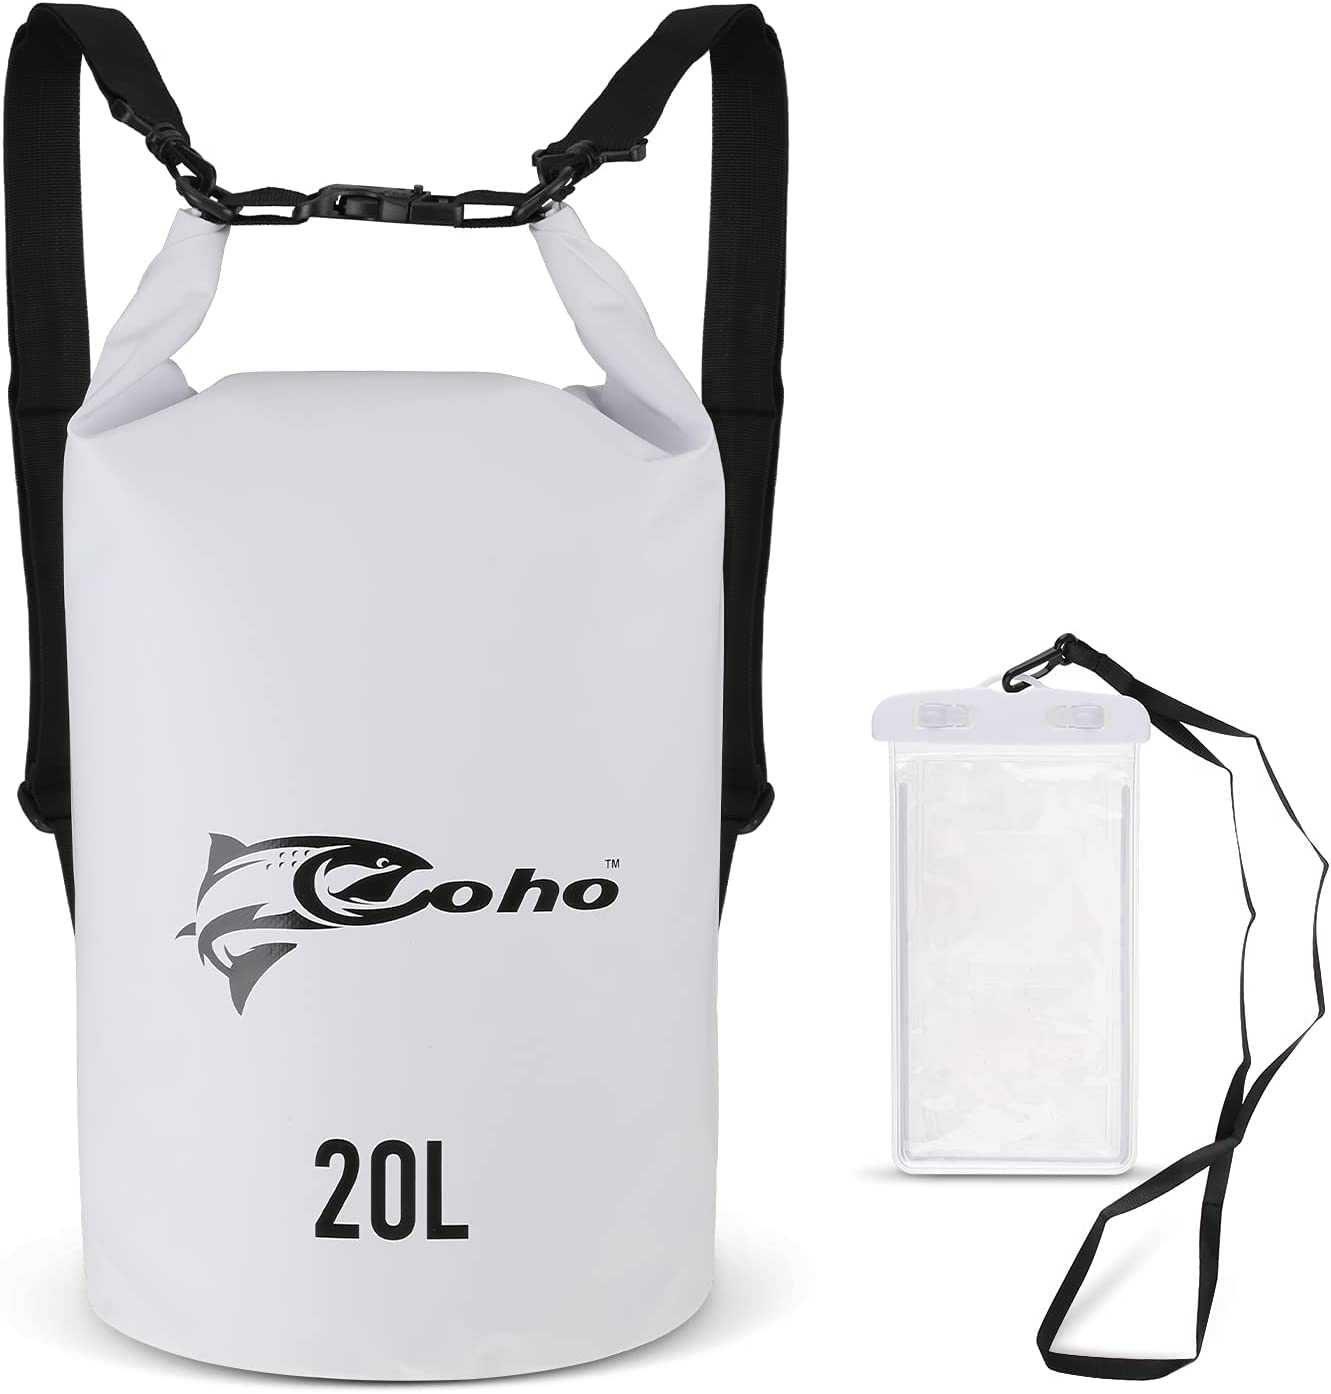 COHO Waterproof Dry Max 75% OFF Bag 20L with Backpack 5 ☆ popular Case Phone